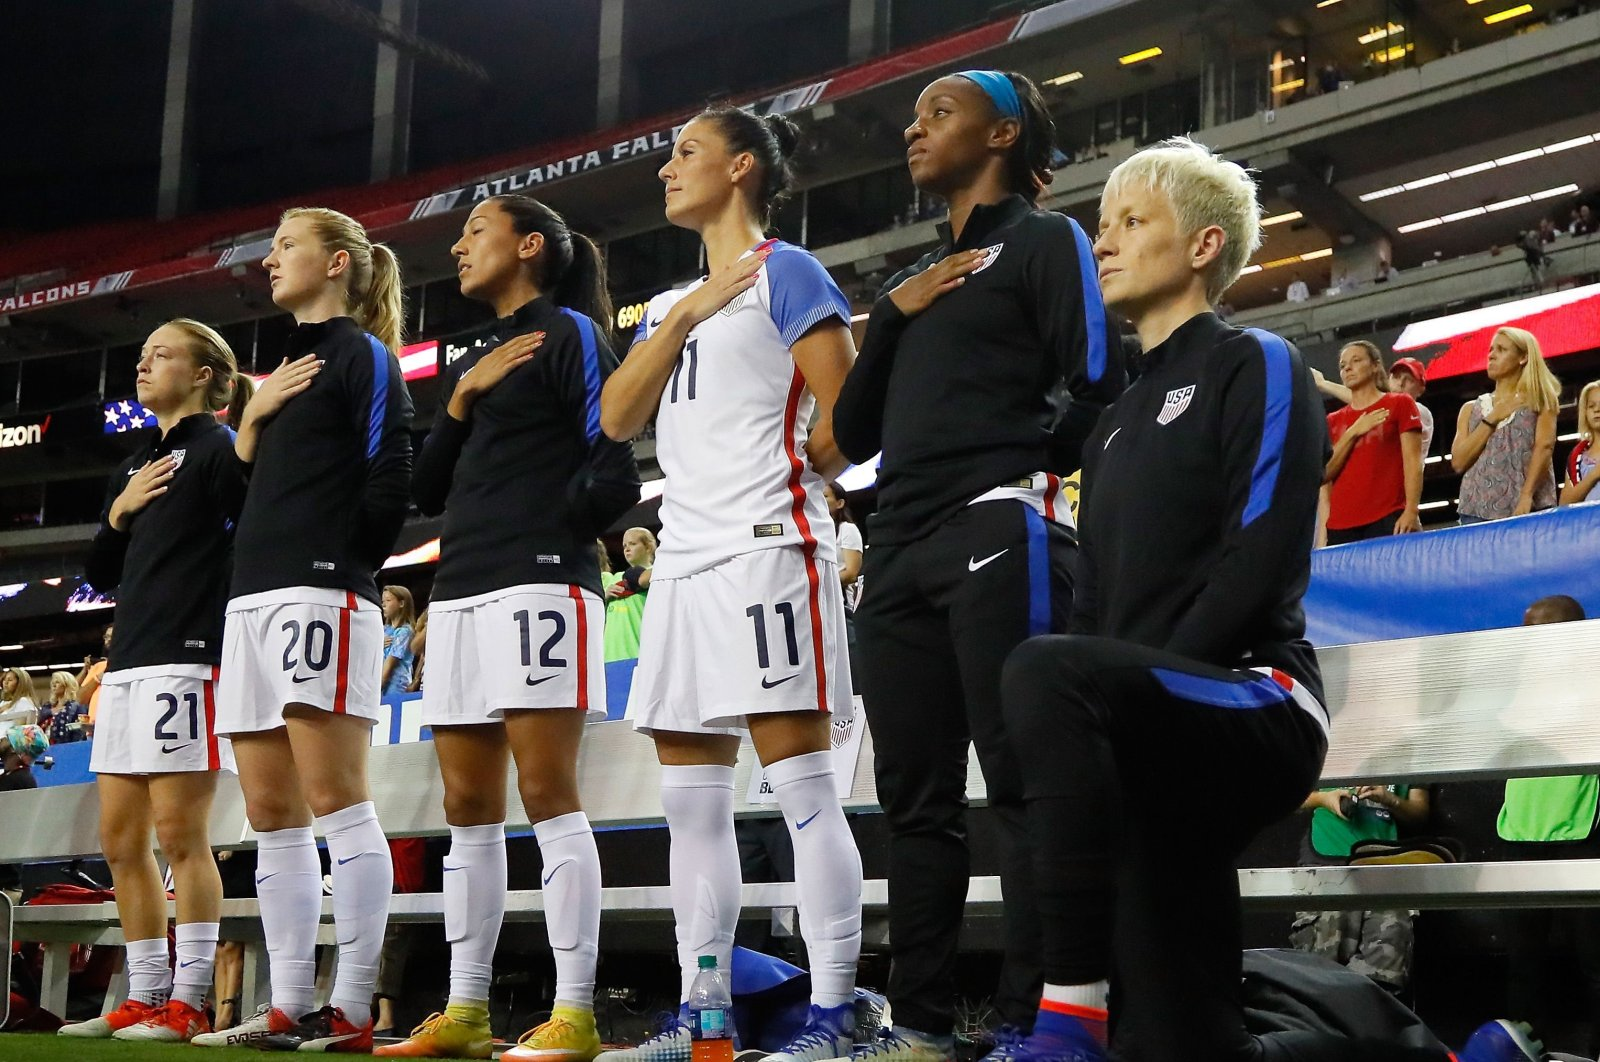 Megan Rapinoe (L) kneels during the national anthem prior to the match between the United States and the Netherlands, in Atlanta, U.S., Sept. 17, 2016. (AFP PHOTO)